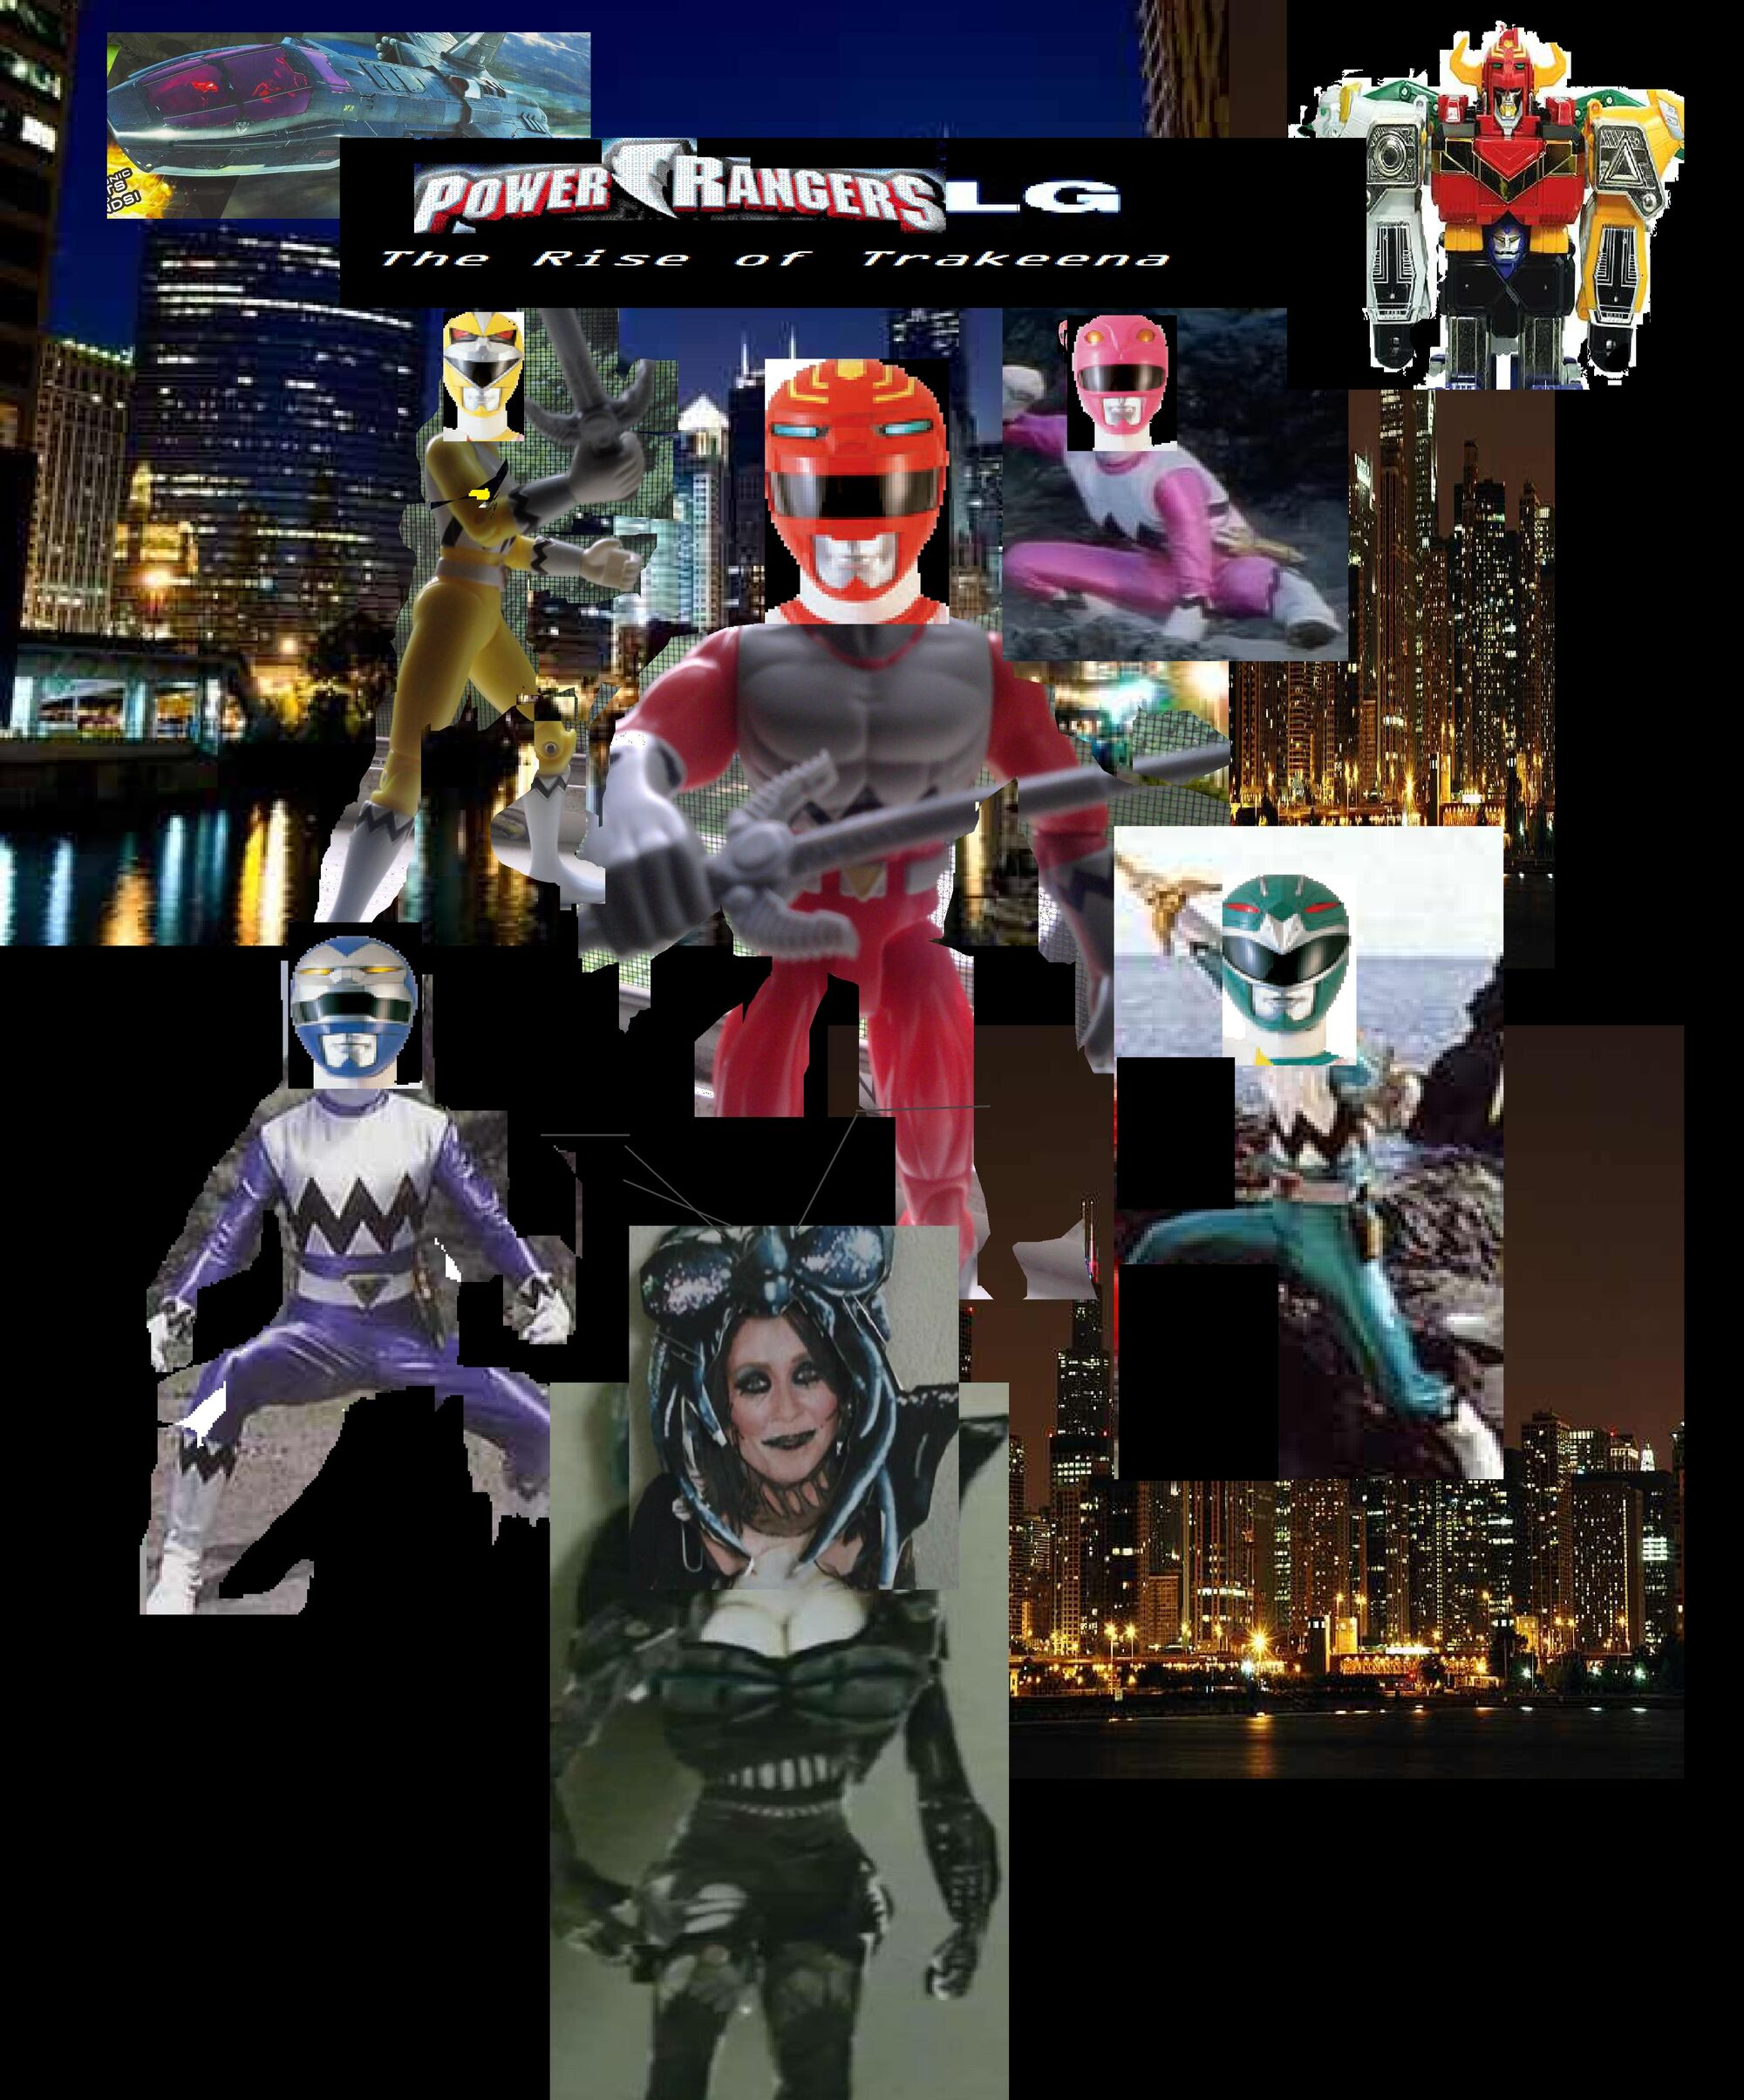 power rangers lost galaxy the rise of trakeena the ultimate